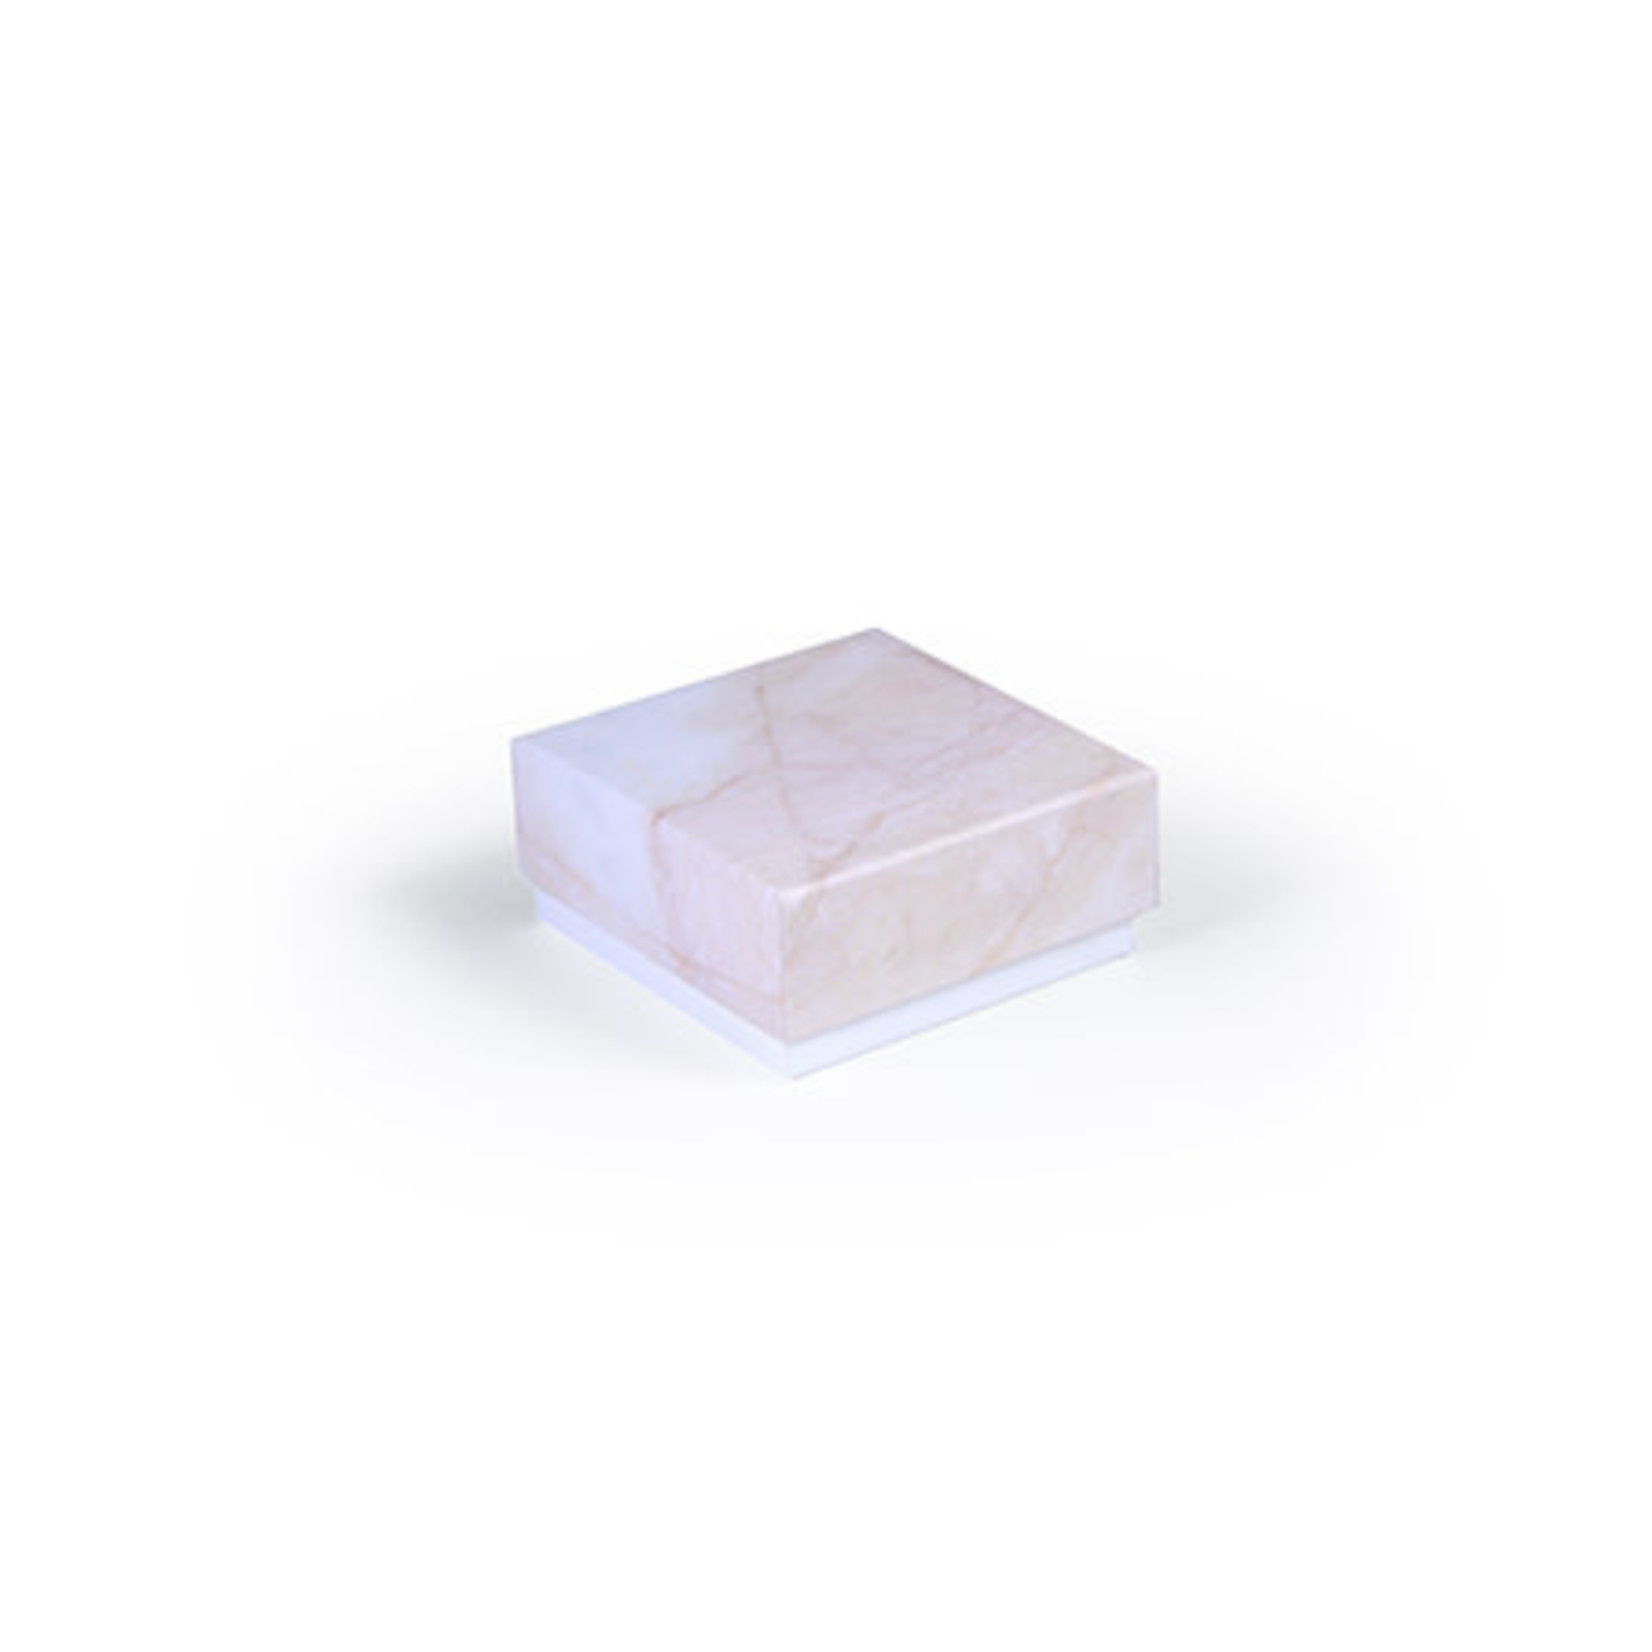 BB collections Luxe box marmer 6.5x6.5x3cm roze